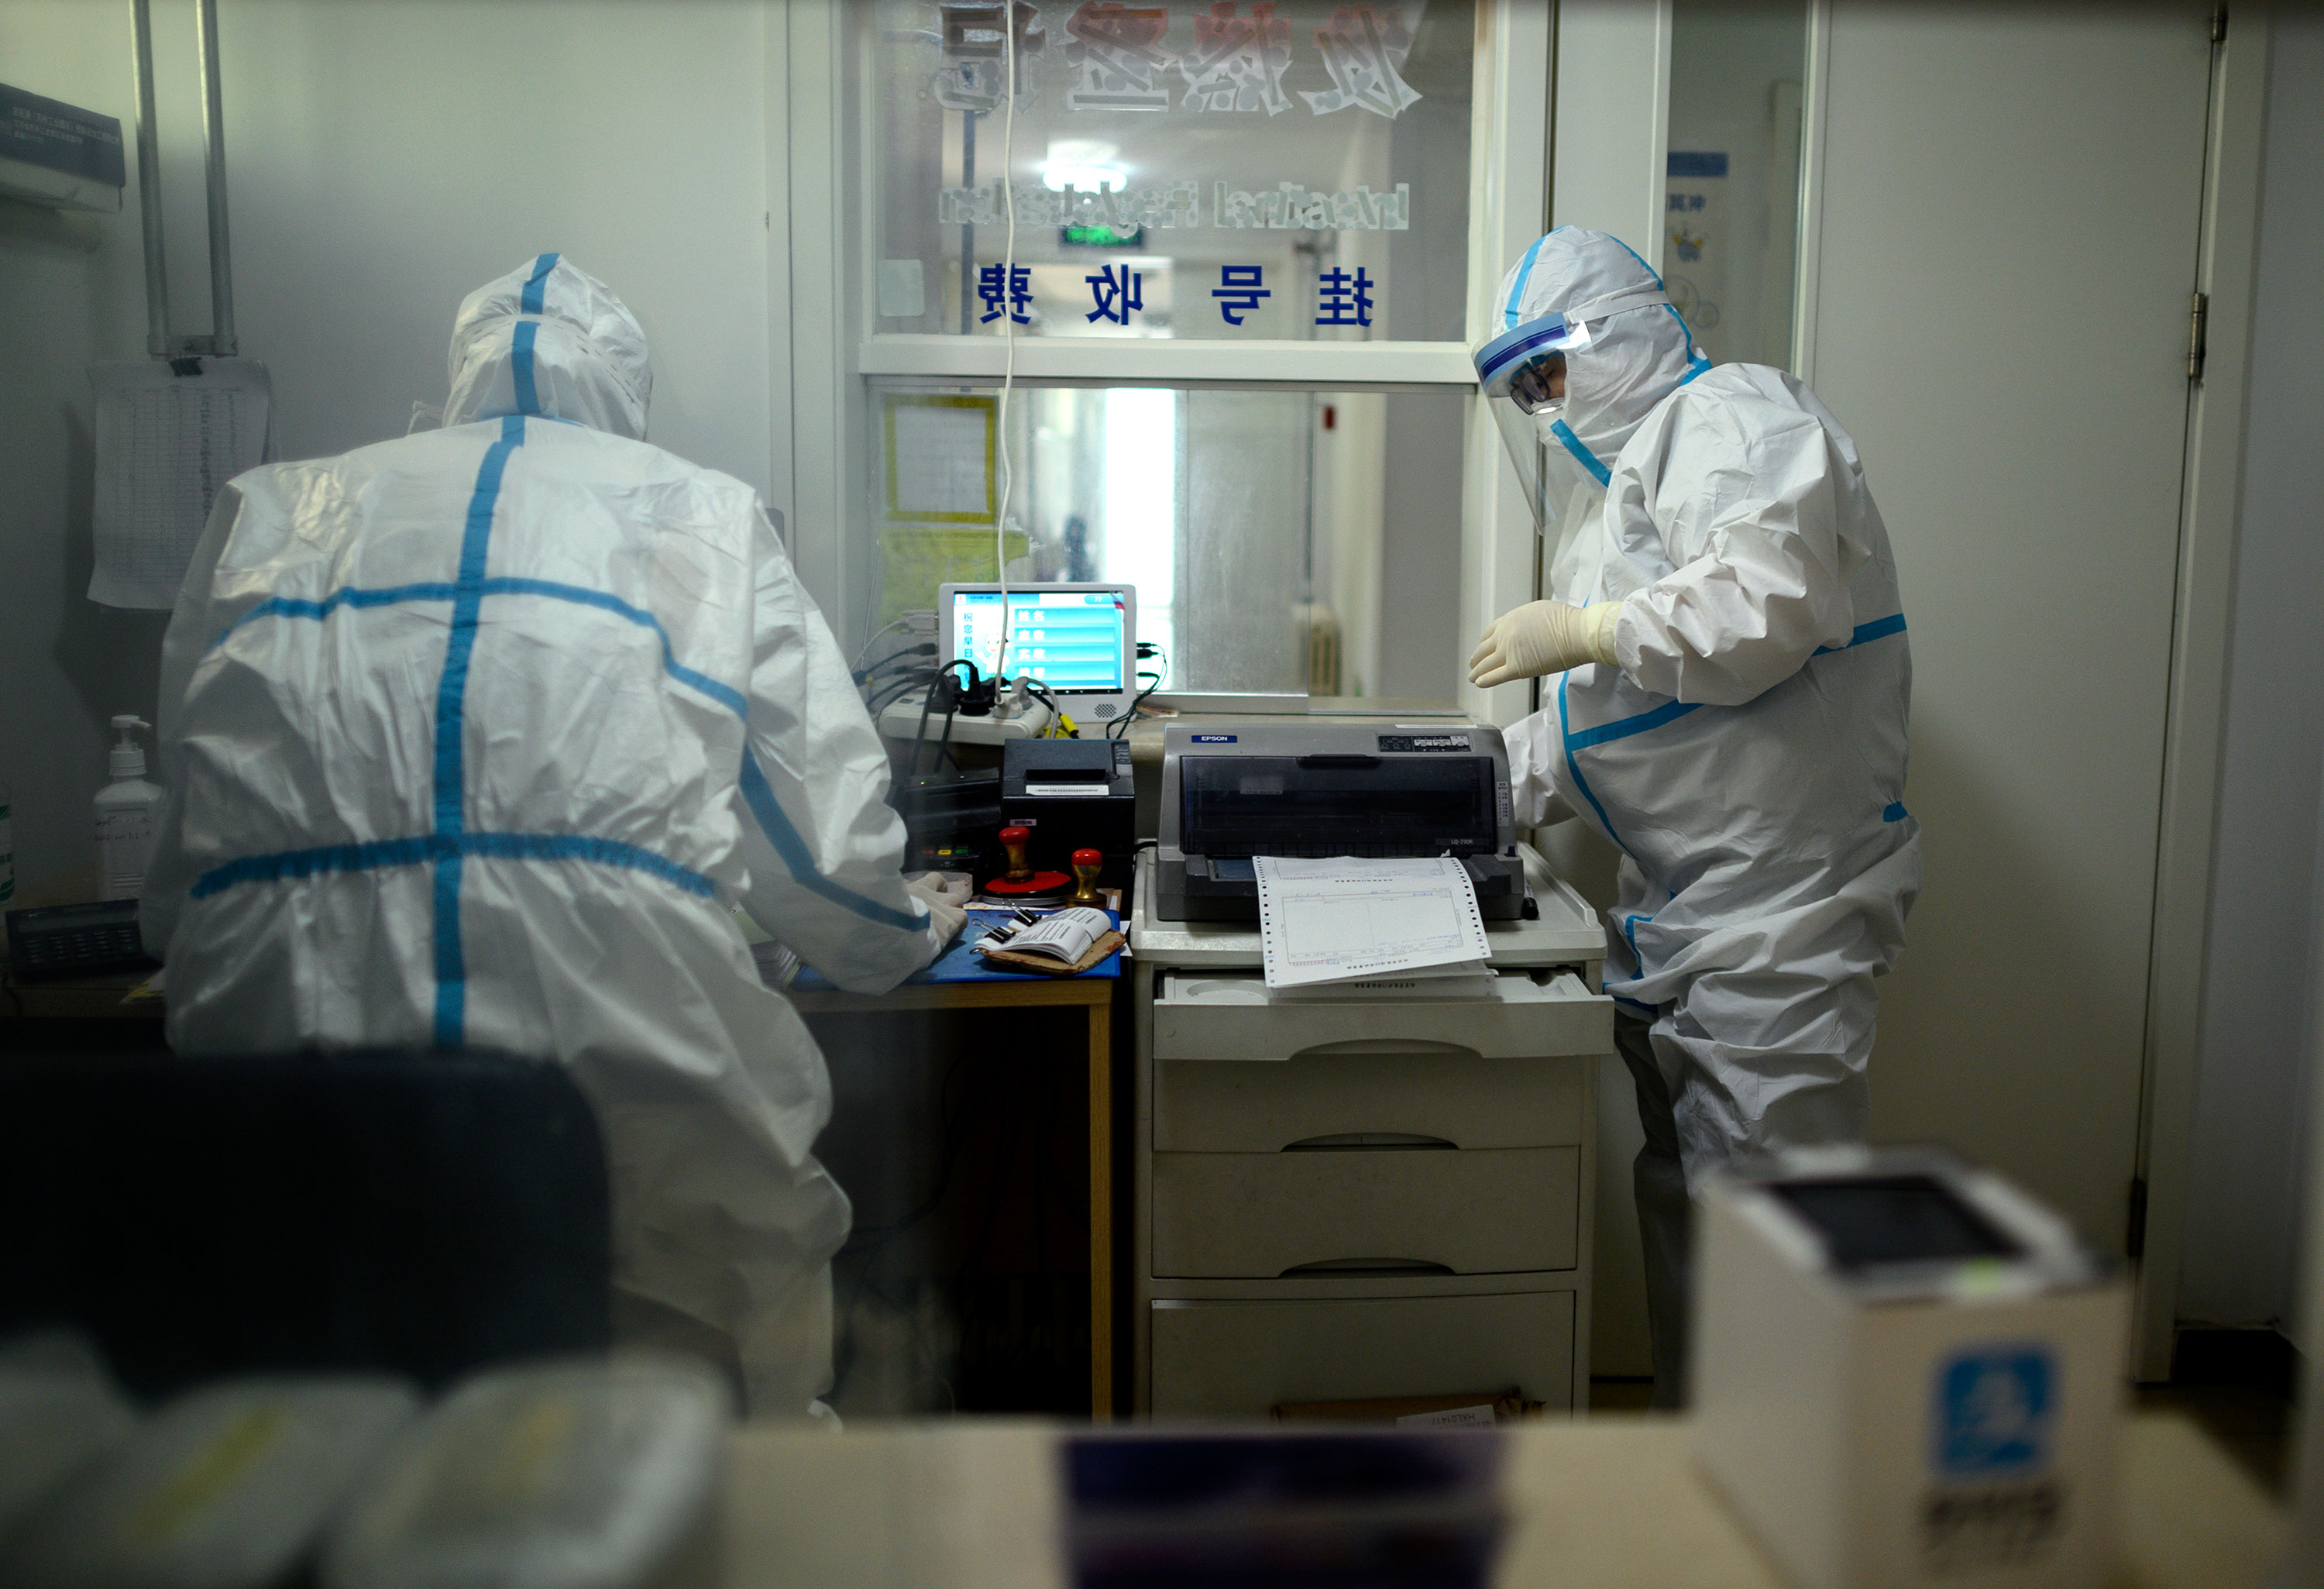 Medical staff work inside a testing clinic in Beijing, China, on April 29.